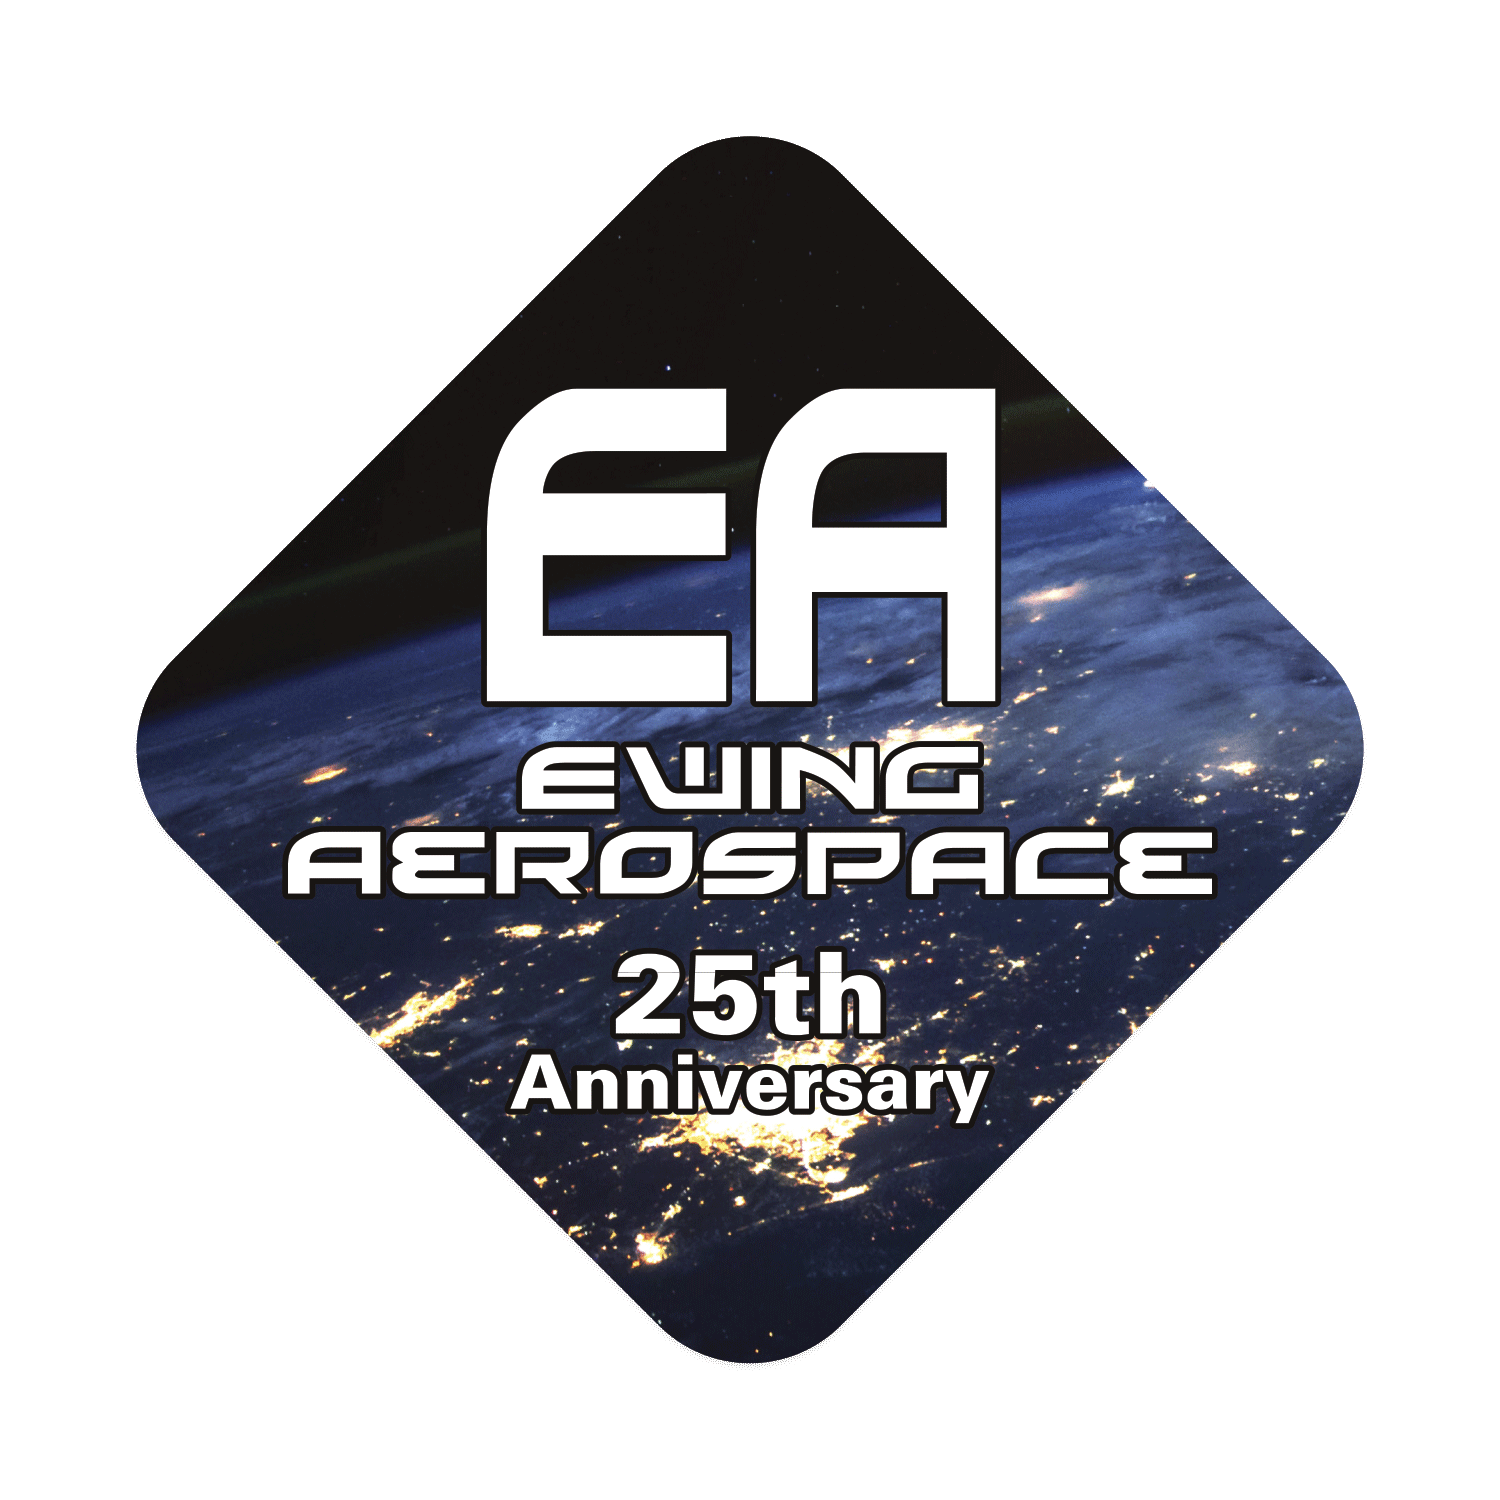 https://www.sswprinting.com/images/products_gallery_images/13205_EA-Ewing-Aerospace_hi-res.png